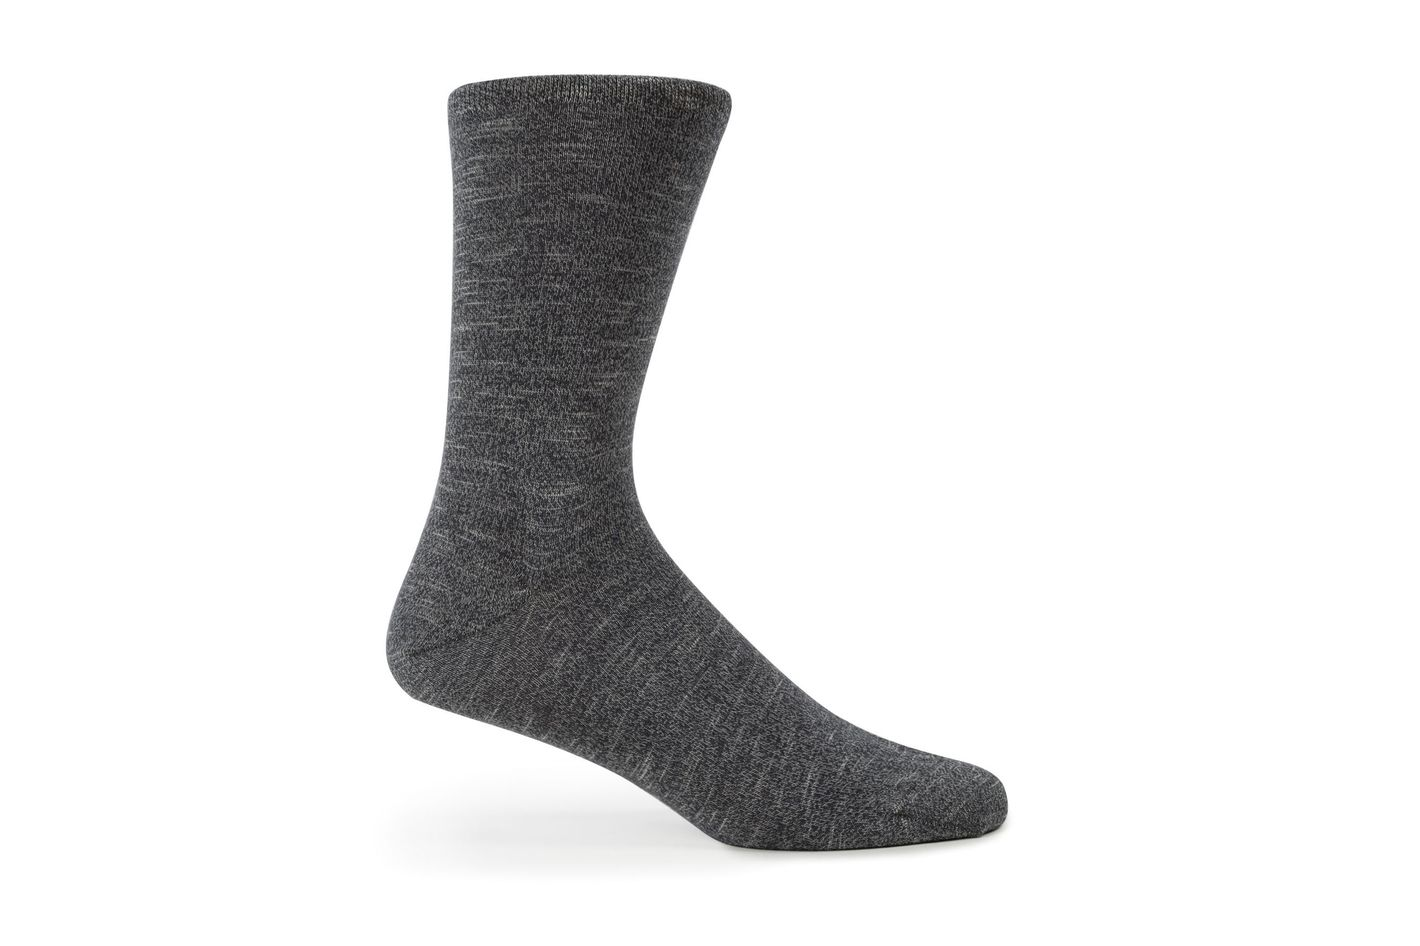 better comforter right design comfortable smarter pages image yarns socks bombas sock tech most